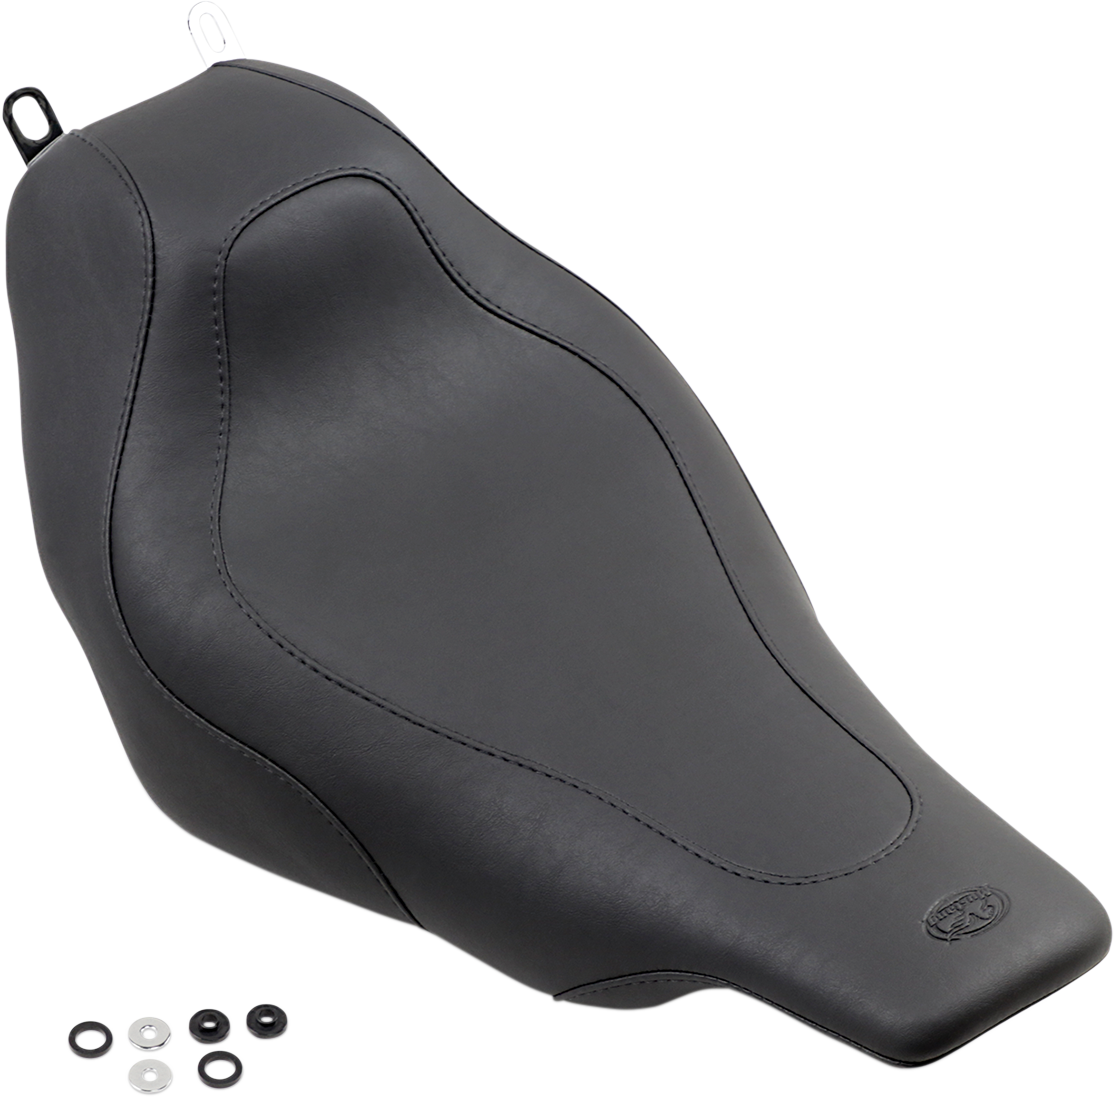 Mustang Synthetic Leather Tripper Solo Seat 97-07 Harley Touring FLHT FLTR FLHTC